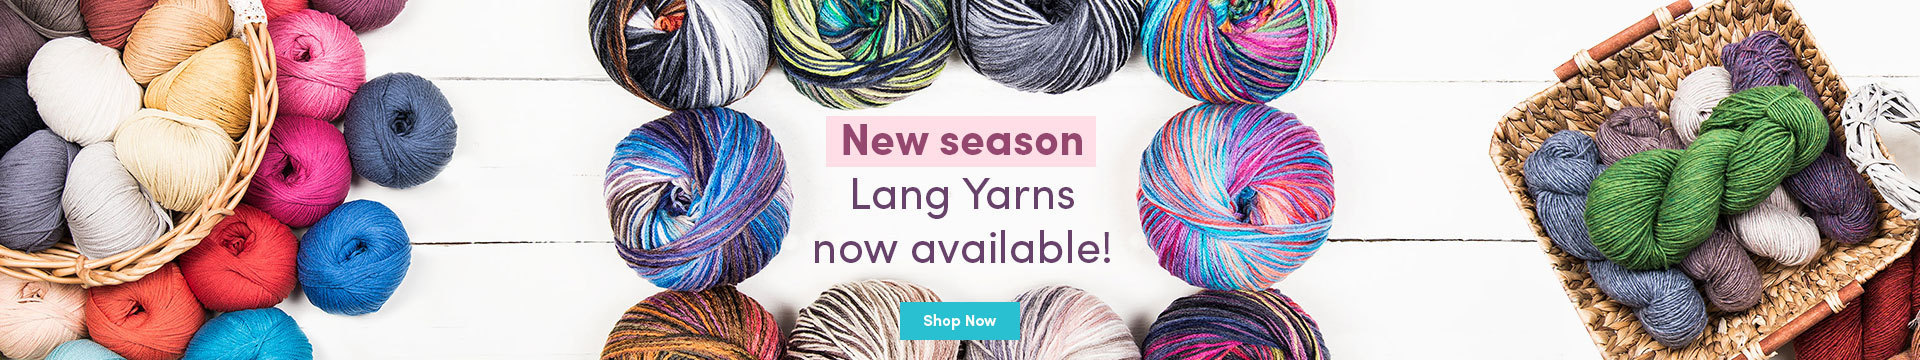 LK Marketing - New Lang Aug 17